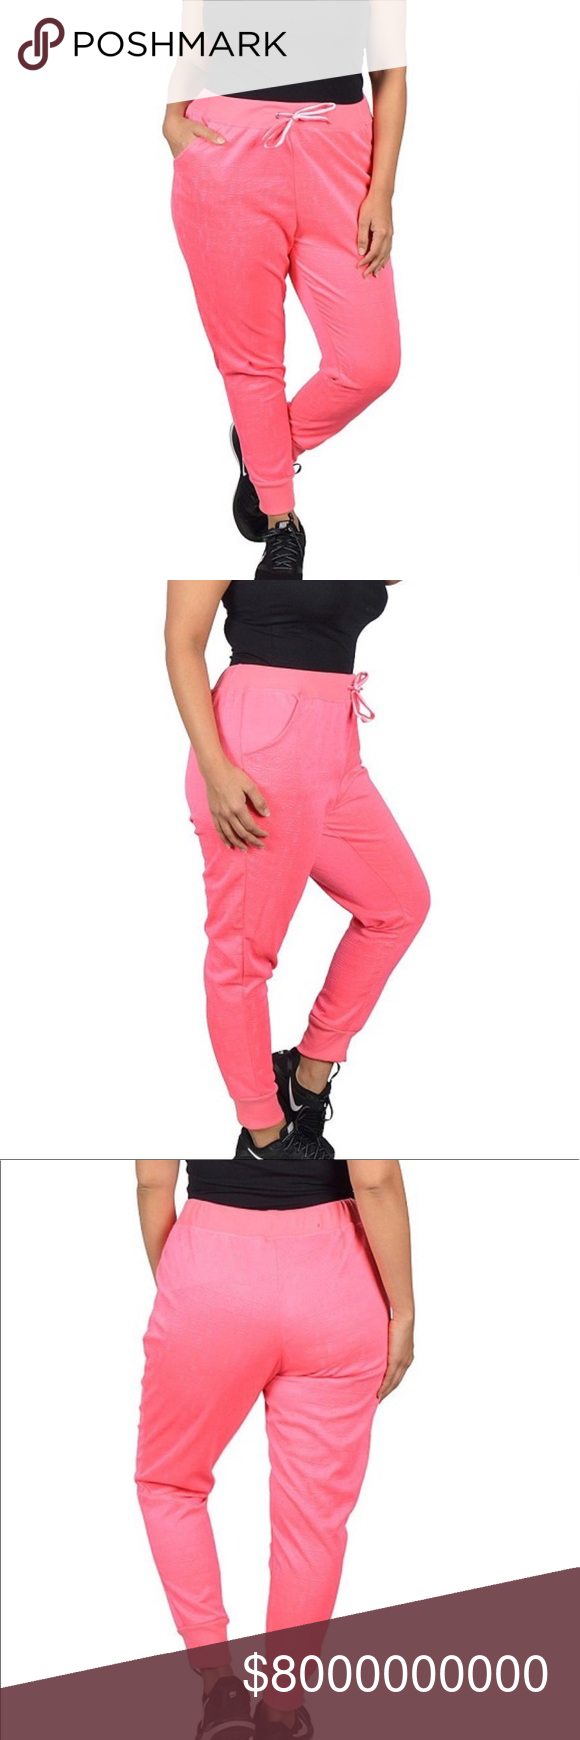 7e04540065bd7 ✅HP ➕🆕 (2X) Plus Size Hot Pink Love Joggers Boutique in 2018